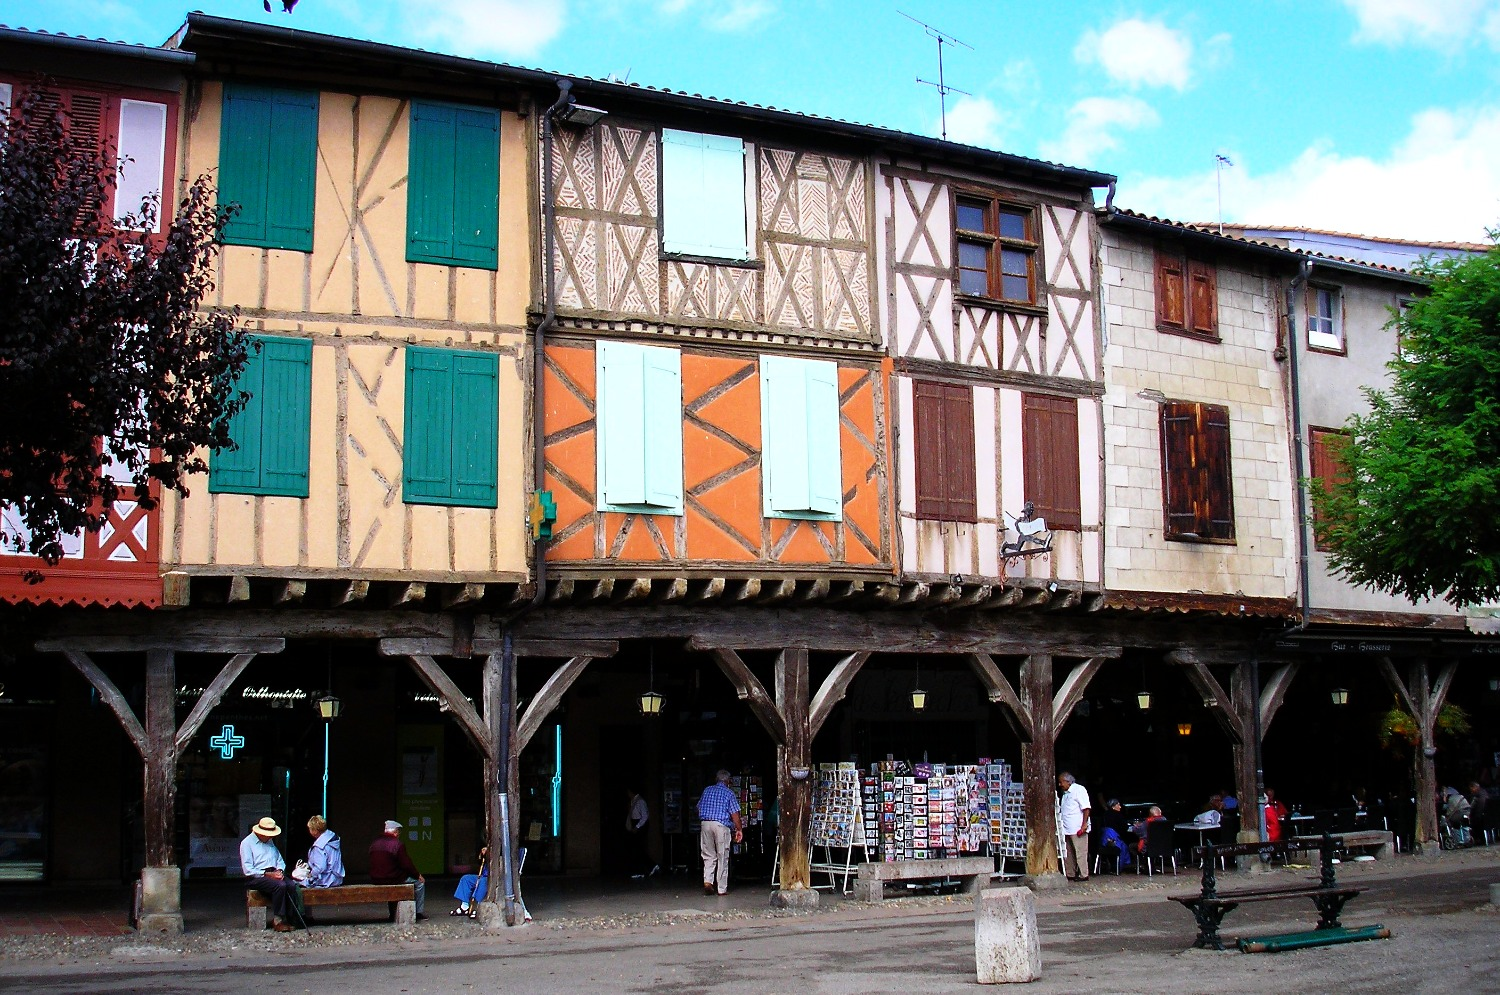 Houses above Mirepoix's town square